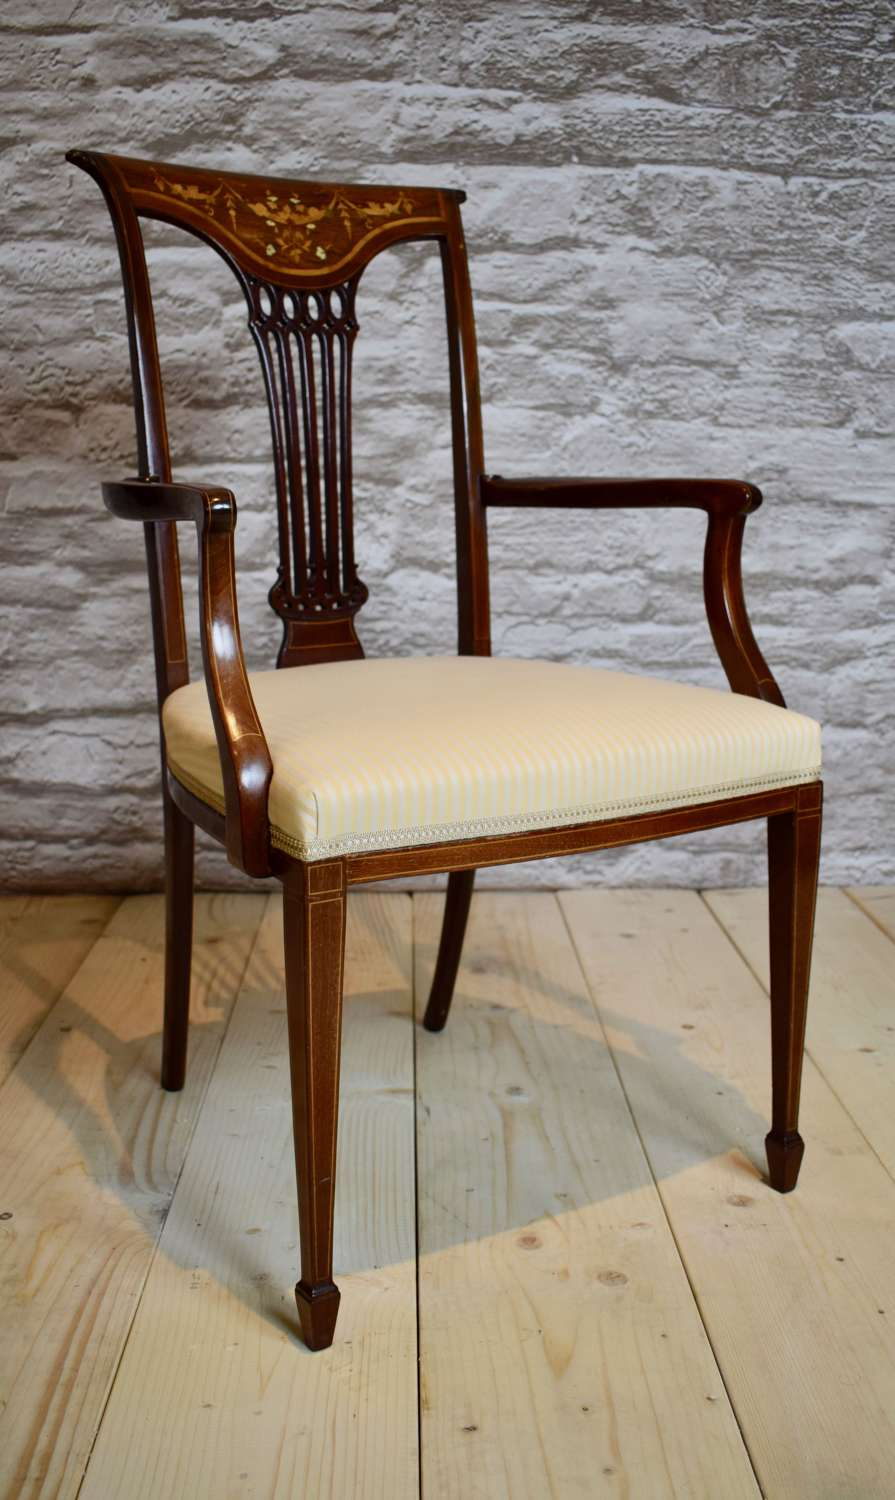 Late 19th C. inlaid armchair